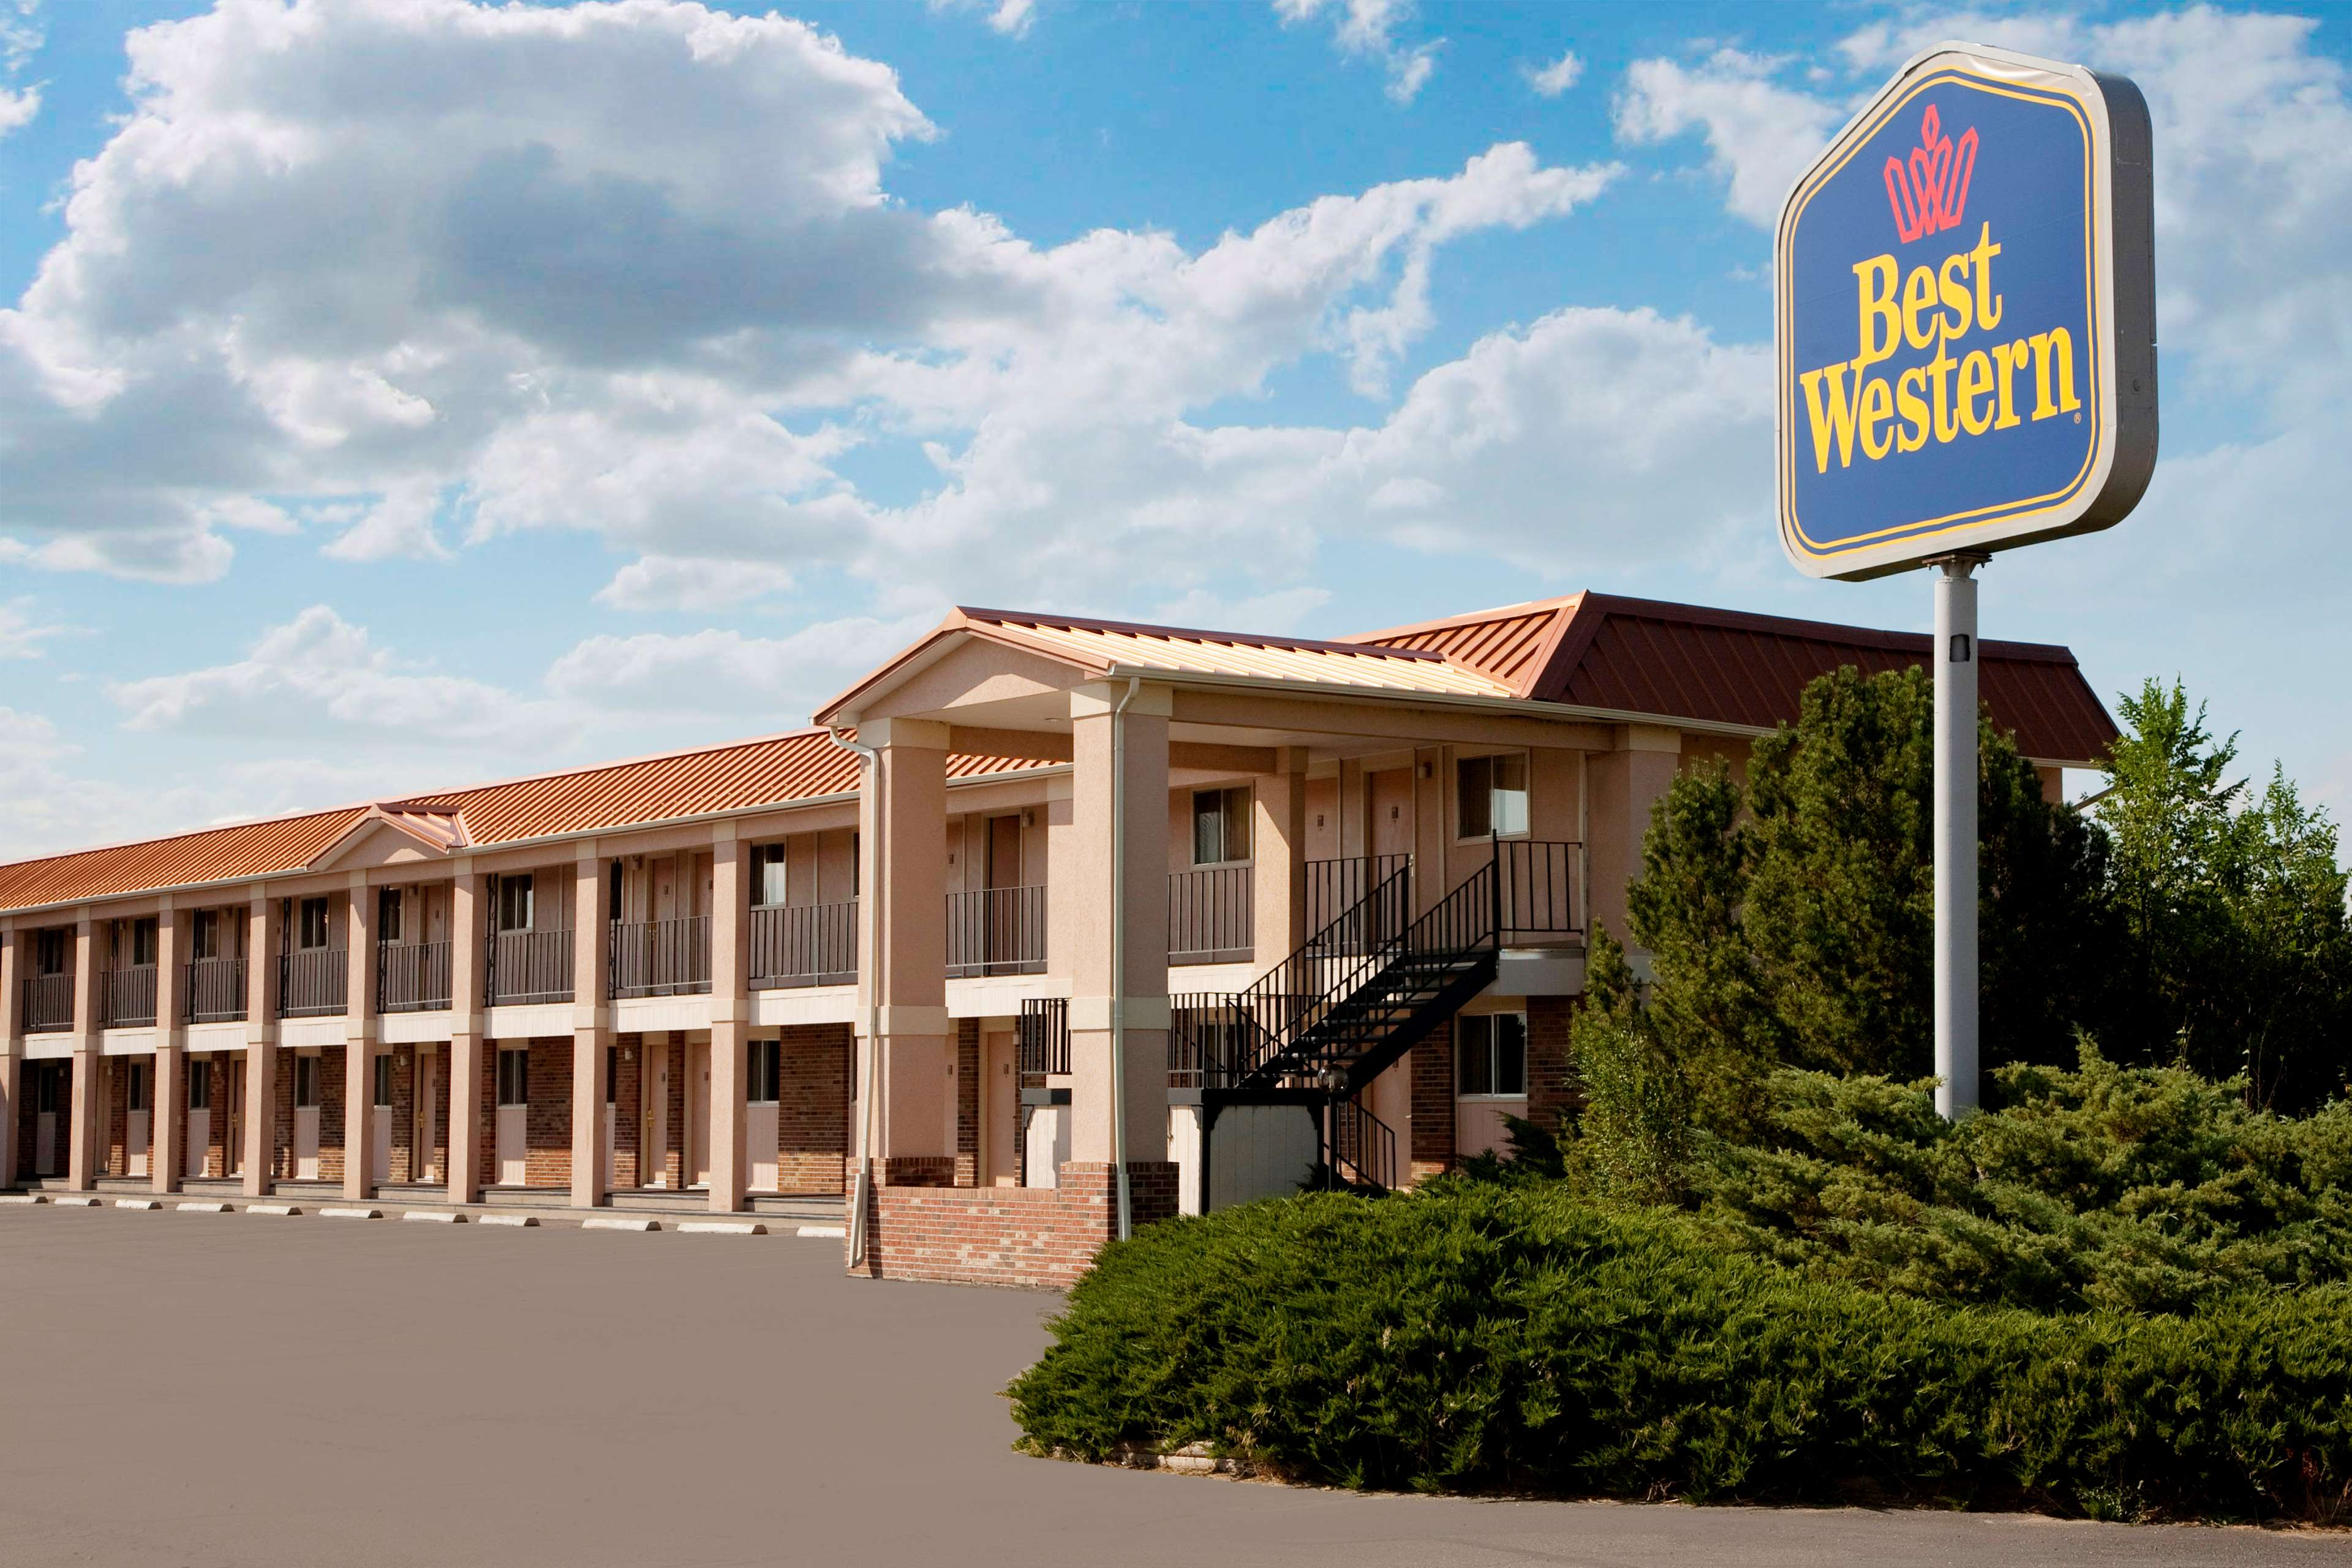 Best western torchlite coupons near me in wheatland 8coupons for Motor inn near me